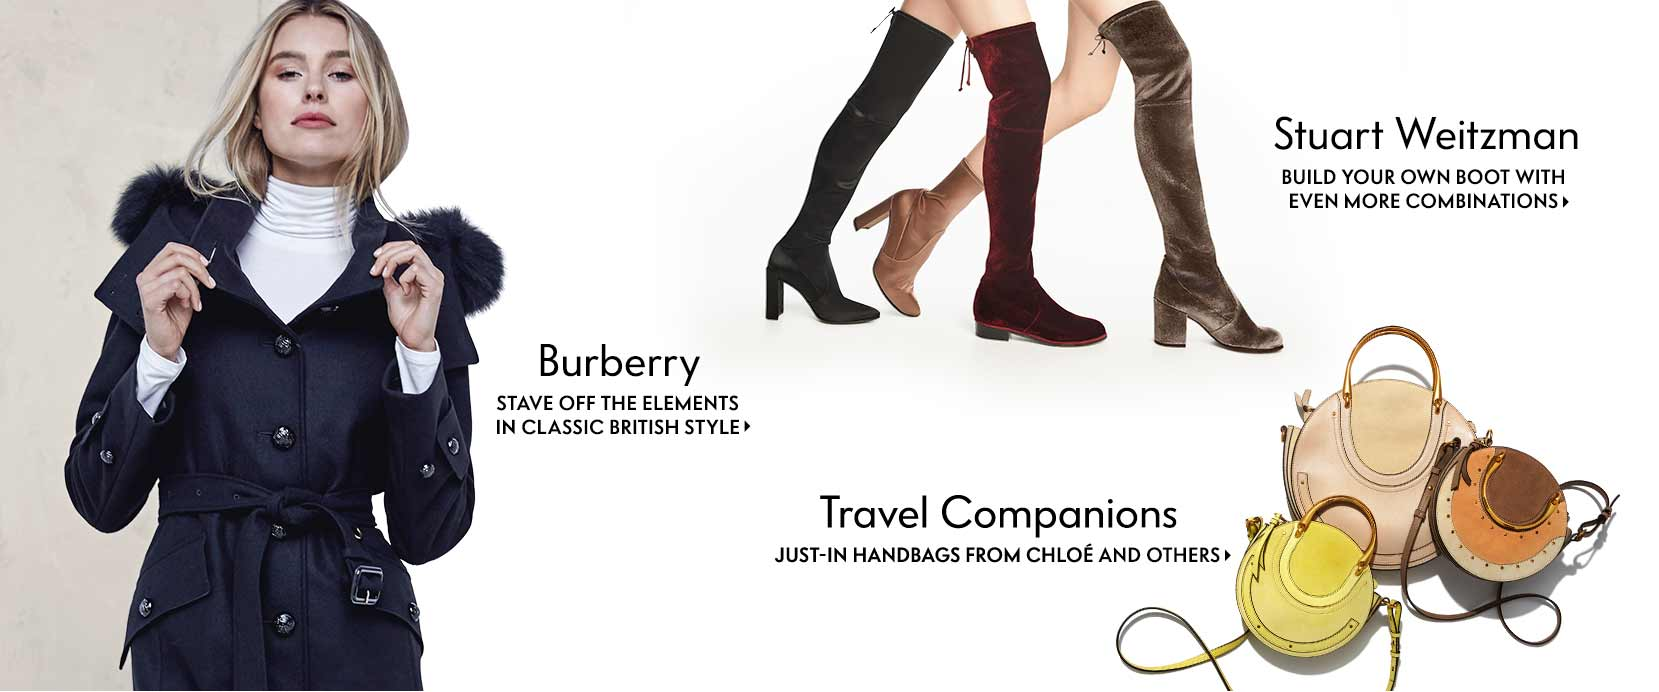 Burberry Stave off the elements in classic British style, Stuart Weitzman Build Your Own Boot with even more combinations, Travel Companions Just-in handbags from Chlo?? and others